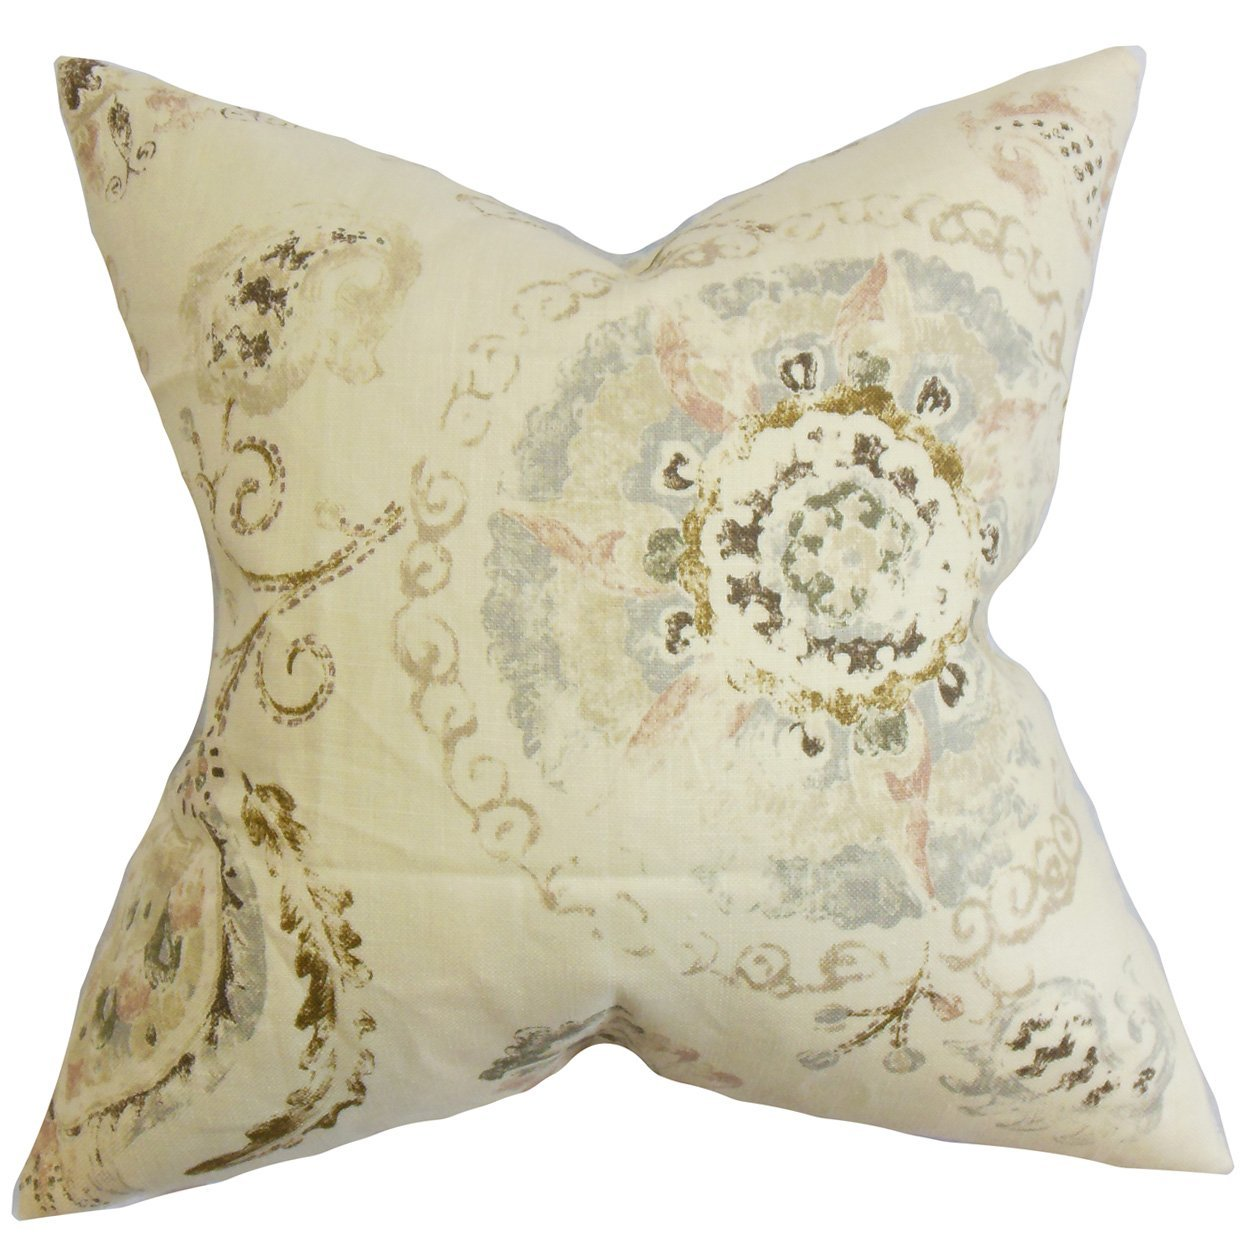 The Pillow Collection Riah Floral Bedding Sham Brown Queen//20 x 30